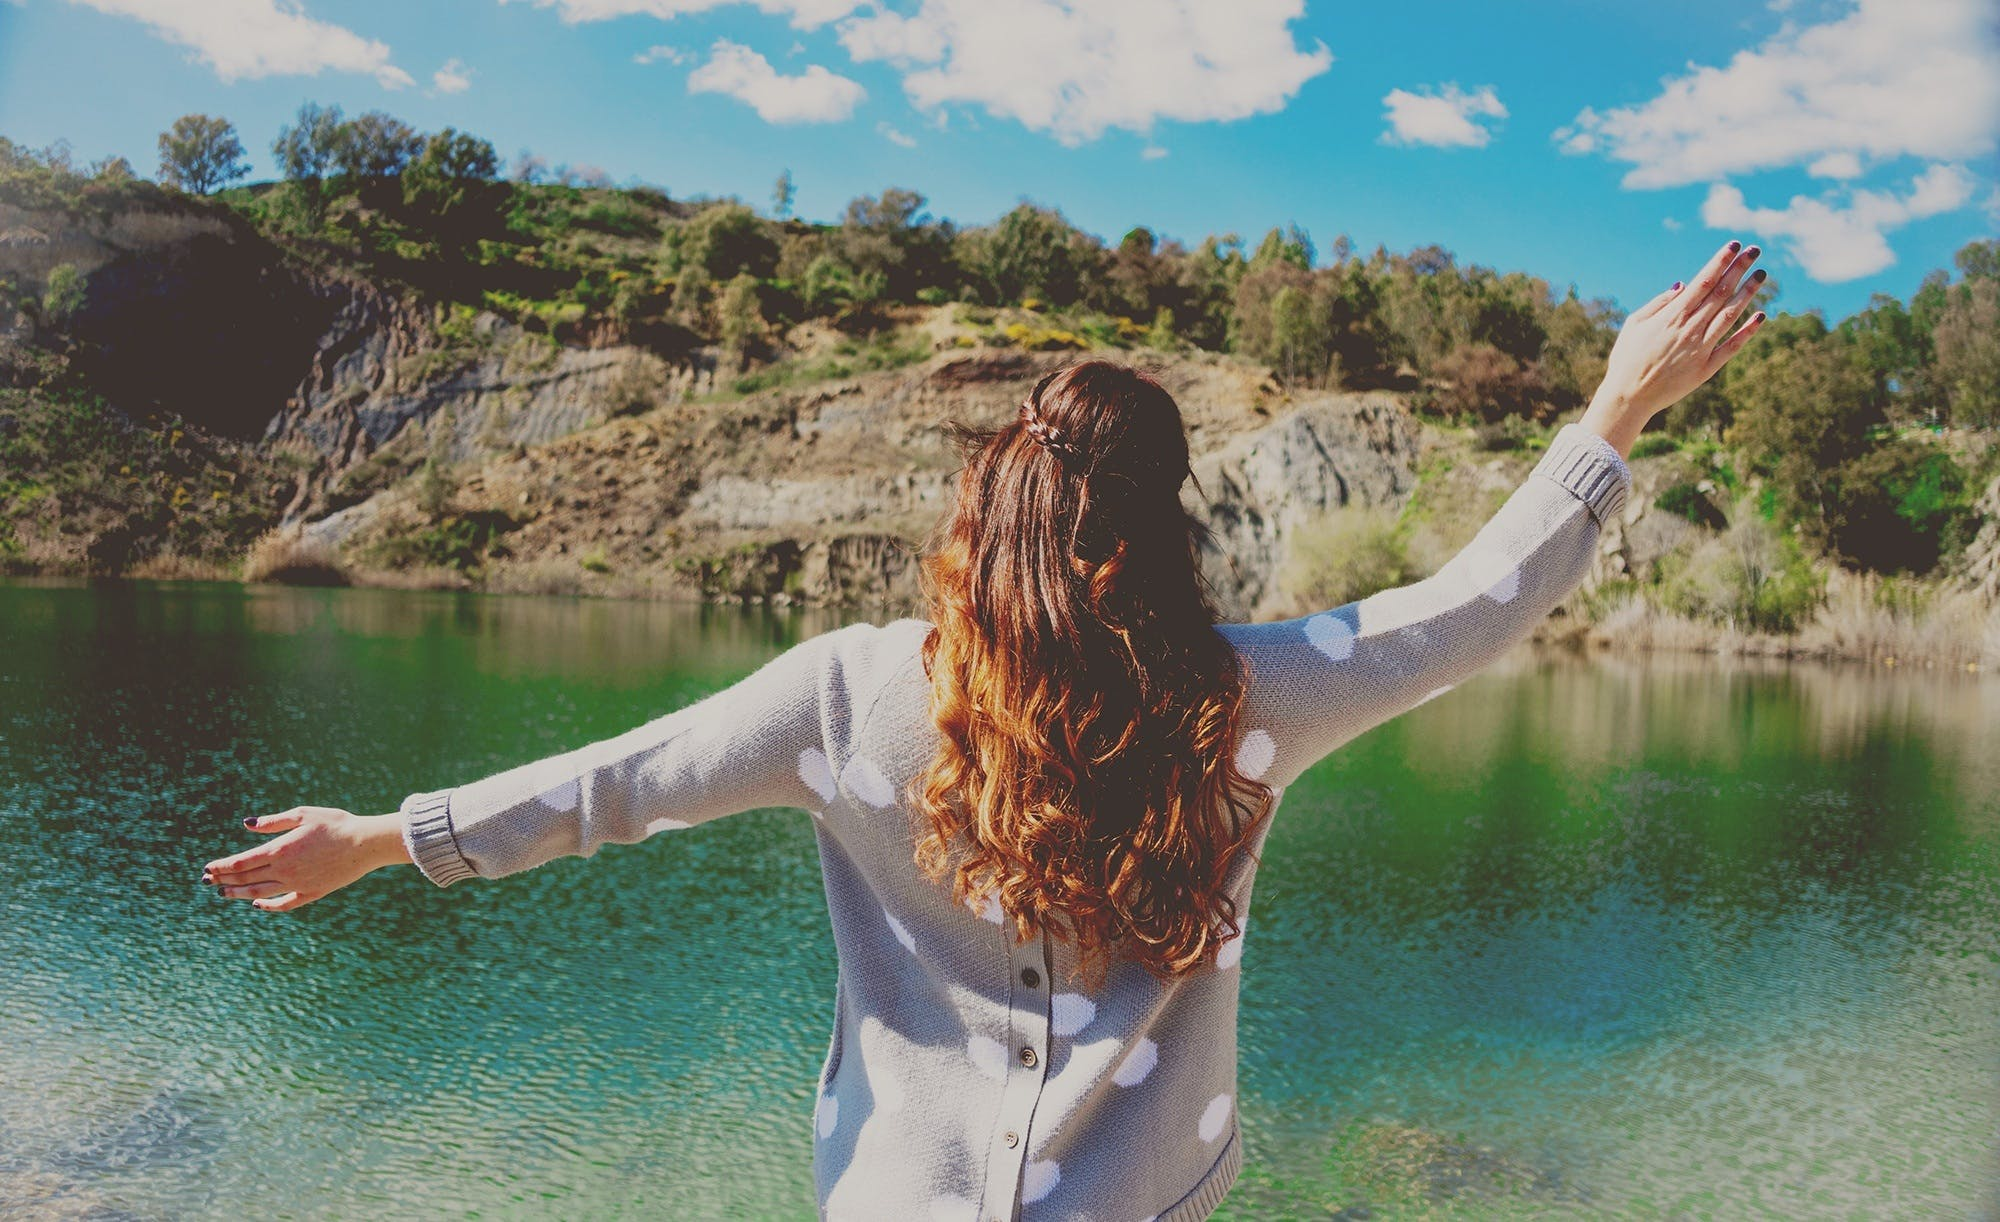 Woman in White Sweater Standing in Front of Body of Water during Day Time